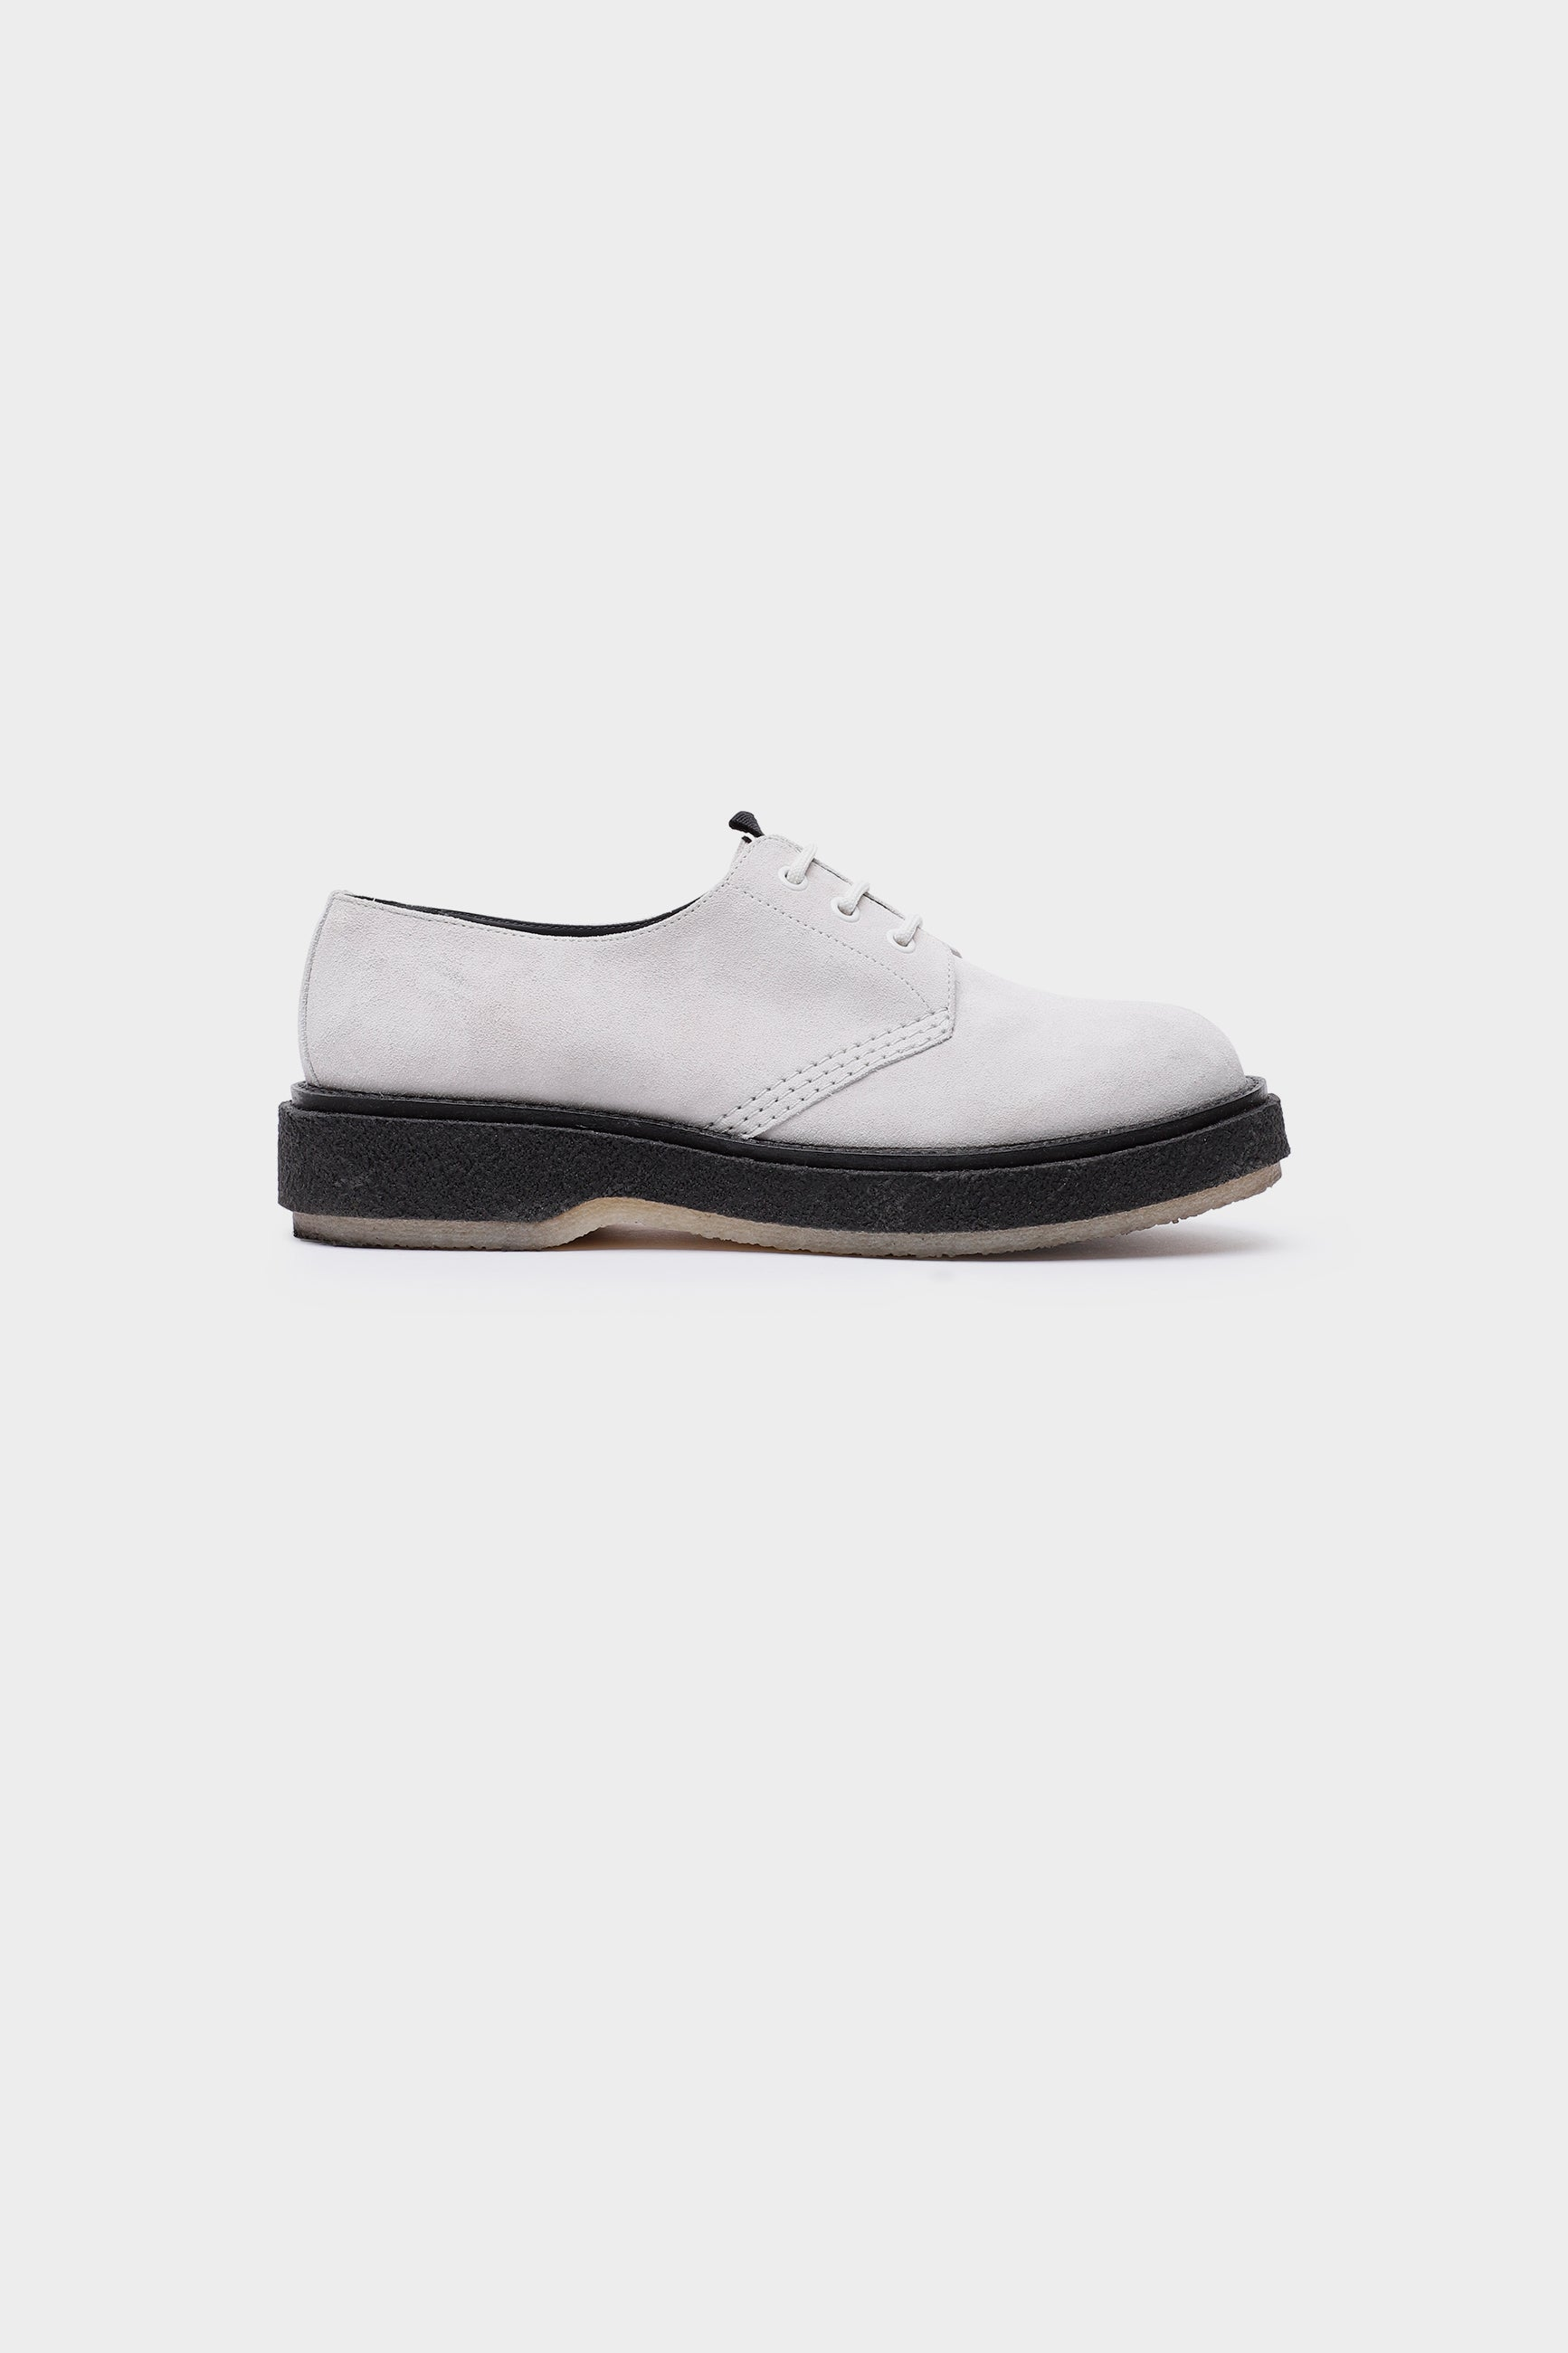 Études Type 130 Off White Shoes 2